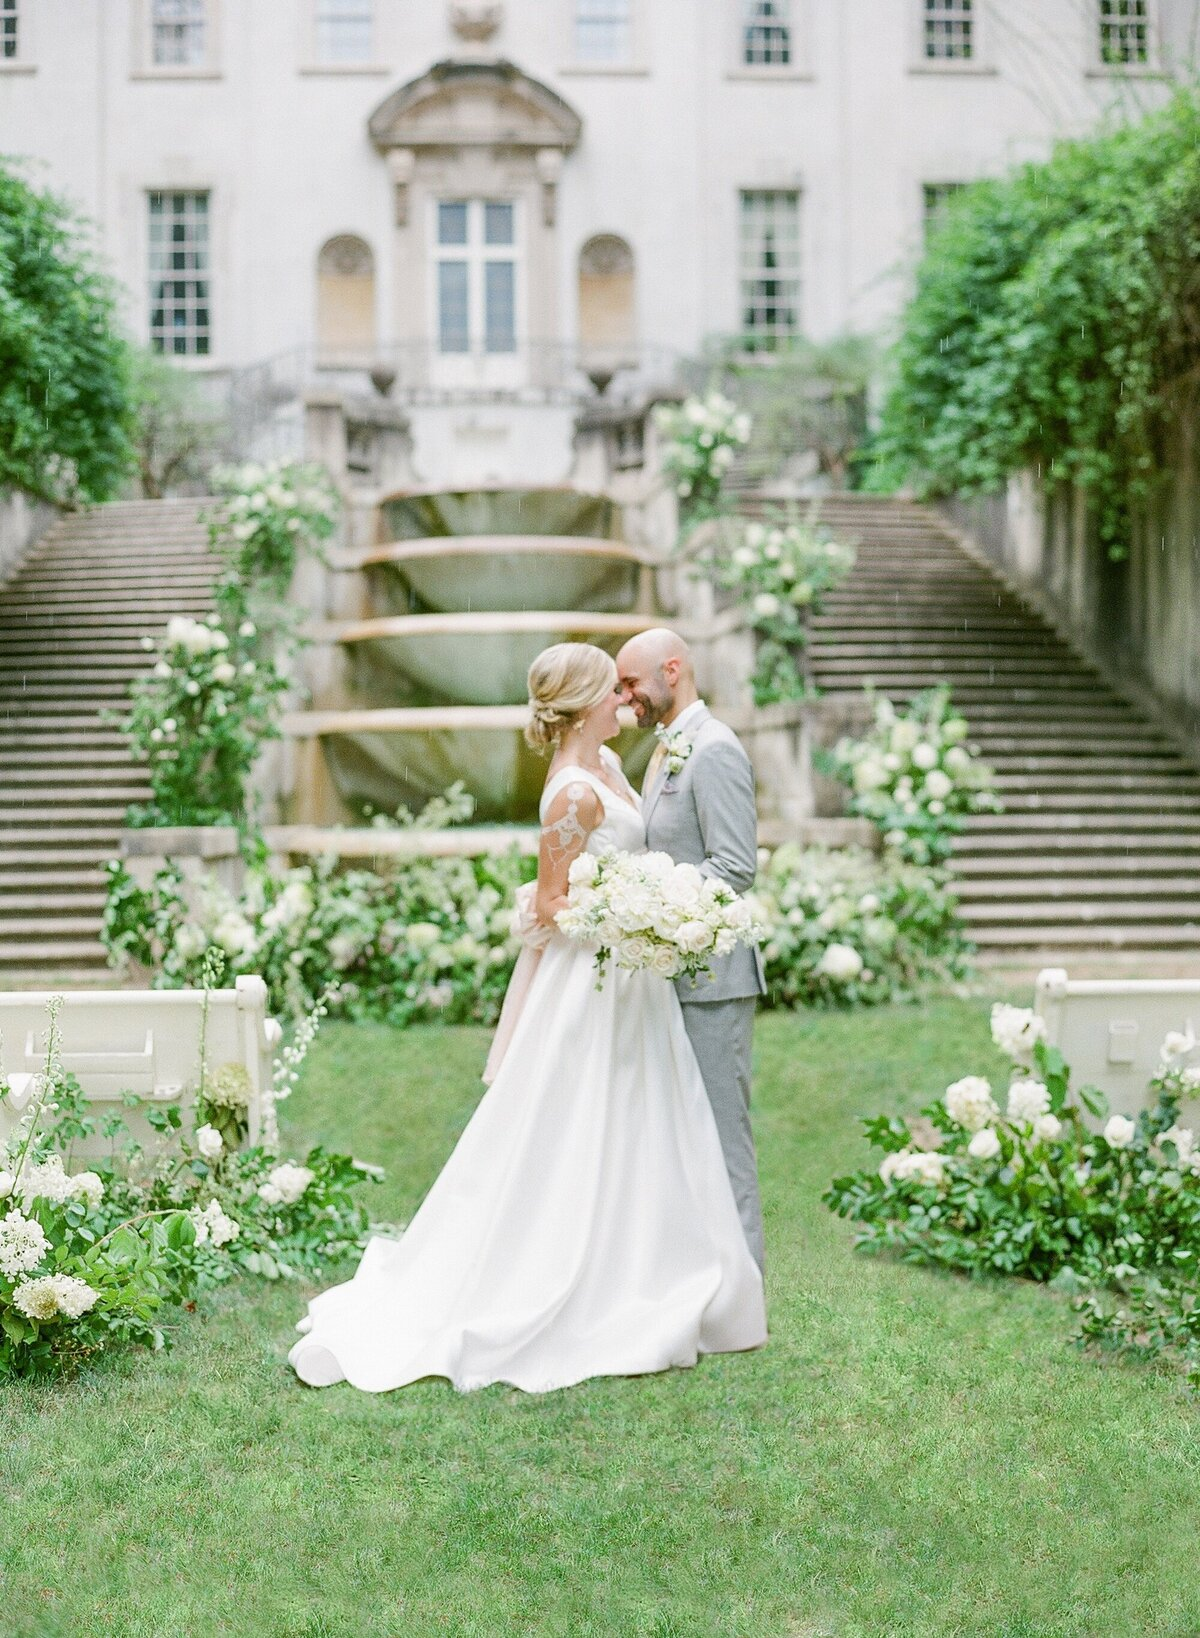 Birmingham-Alabama-Wedding-Photographer_Swan-House-Atlanta-Wedding_72